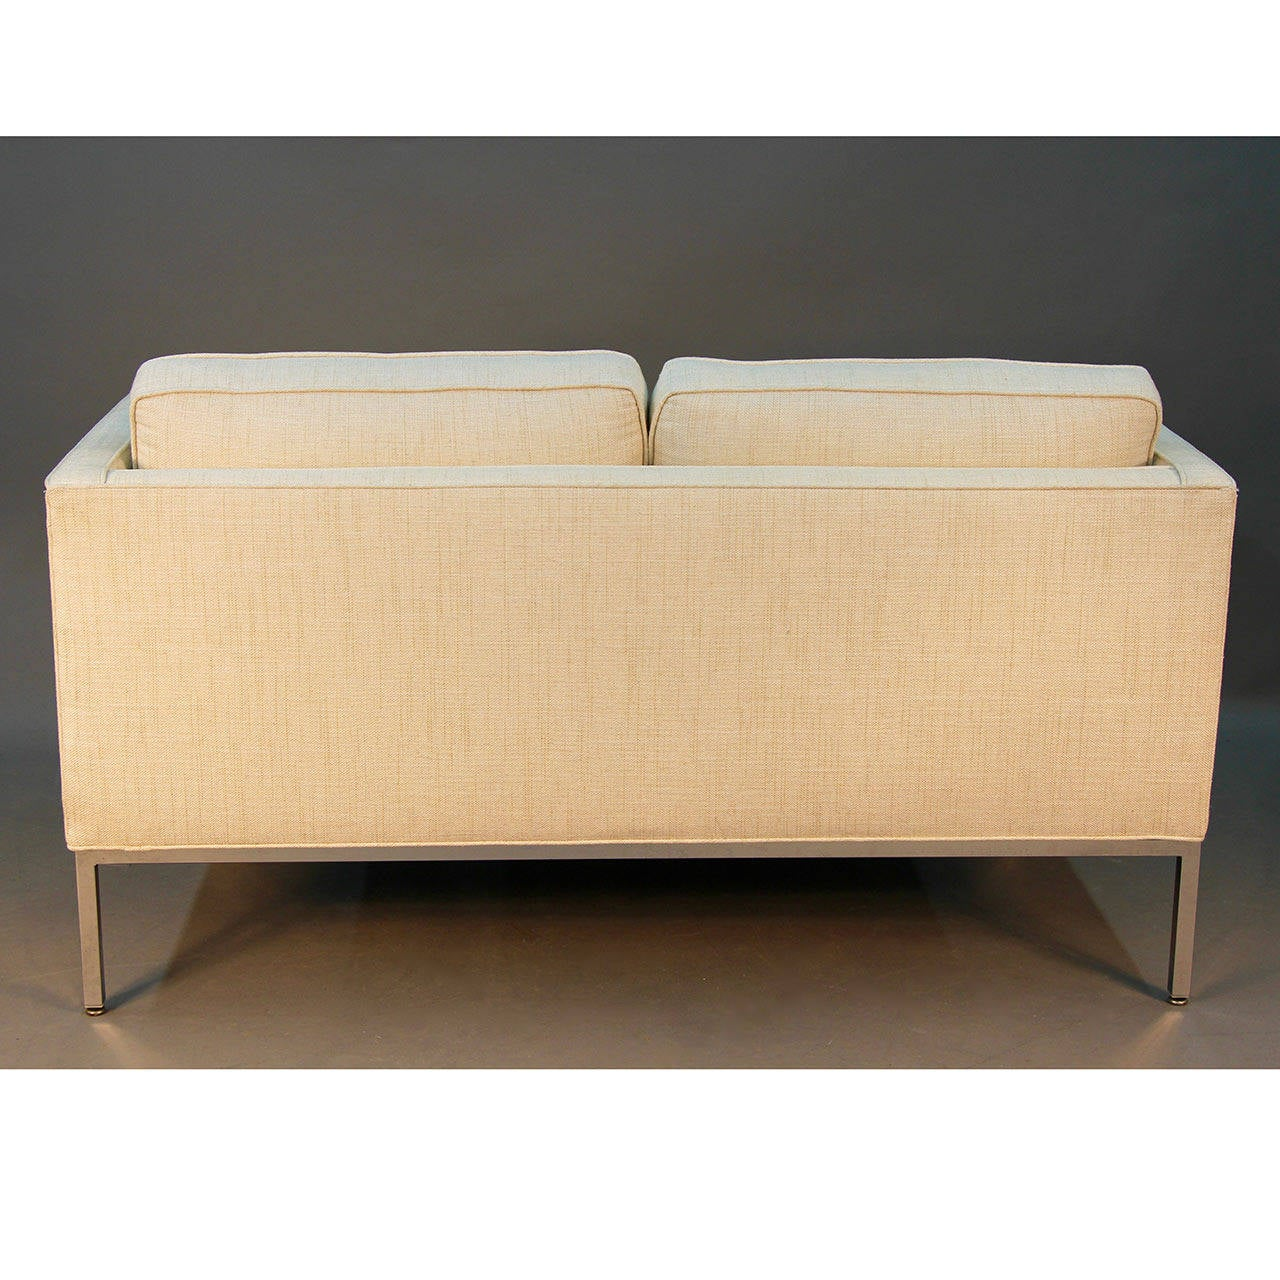 American Milo Baughman for Thayer Coggin Signed Chrome and Linen Loveseat Sofa For Sale